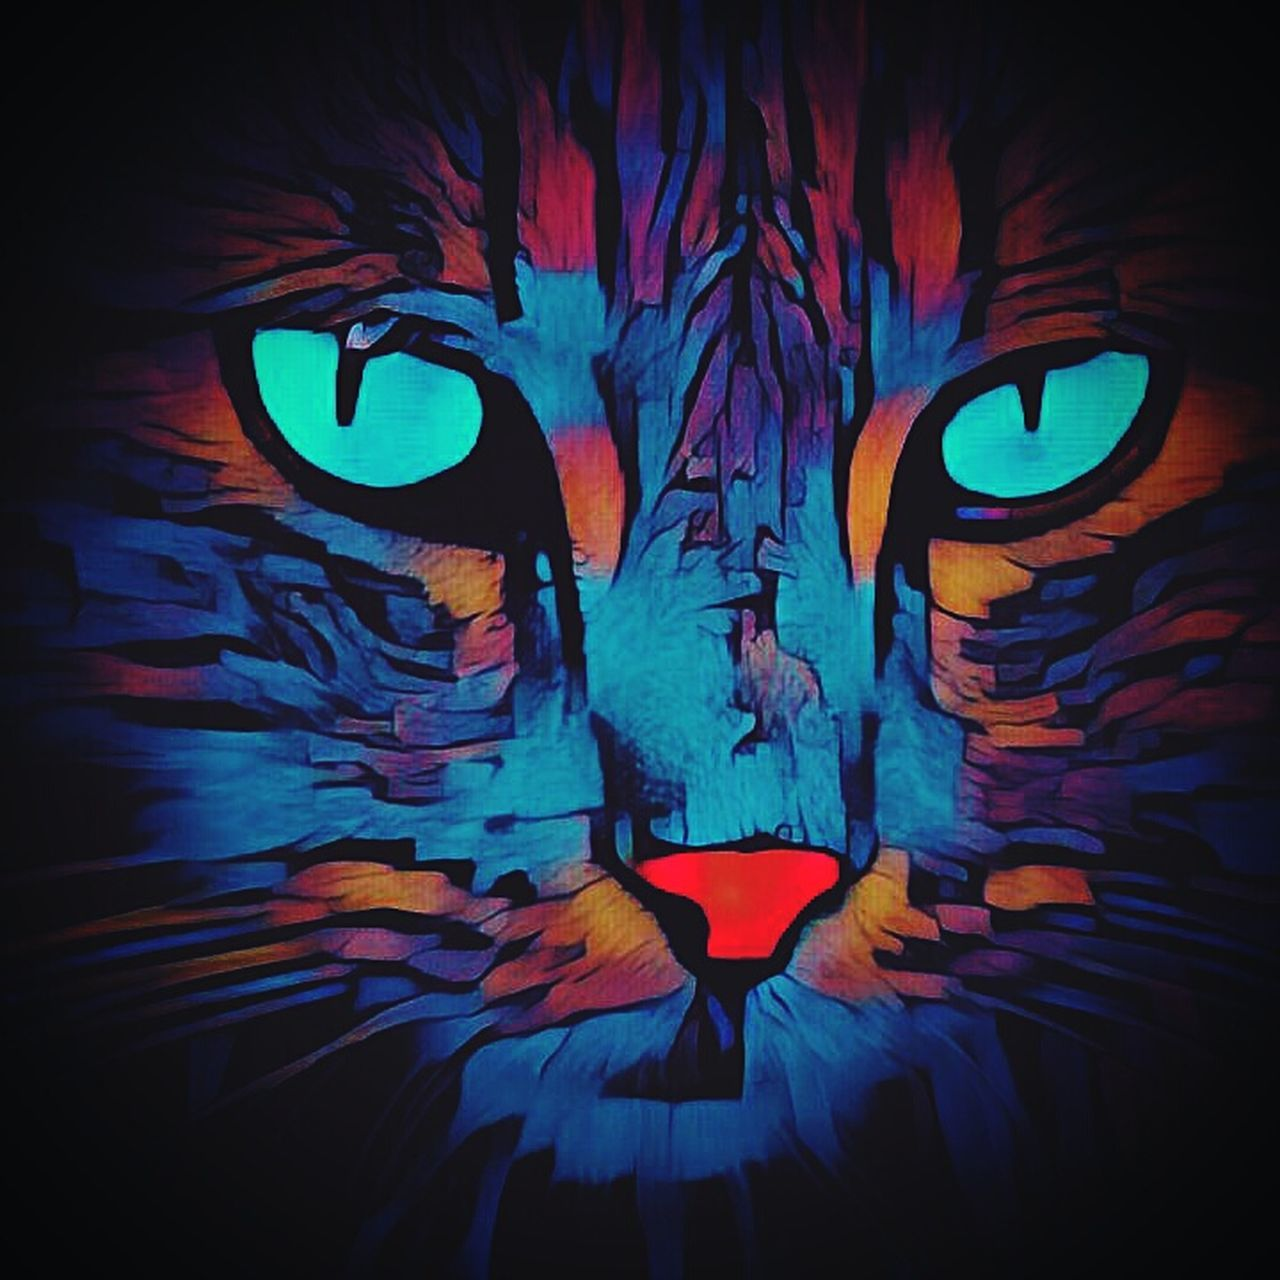 Cat Cat Lovers Cat♡ Lovecats❤️ Pictureoftheday Felinelover Feline Miauuu 😺 Multi Colored Lovephotos Lovedit Edited Click Click 📷📷📷 Lovephotography  Popart Editedbyme Photooftheday Photography Nature Art Arte Loveforphotography